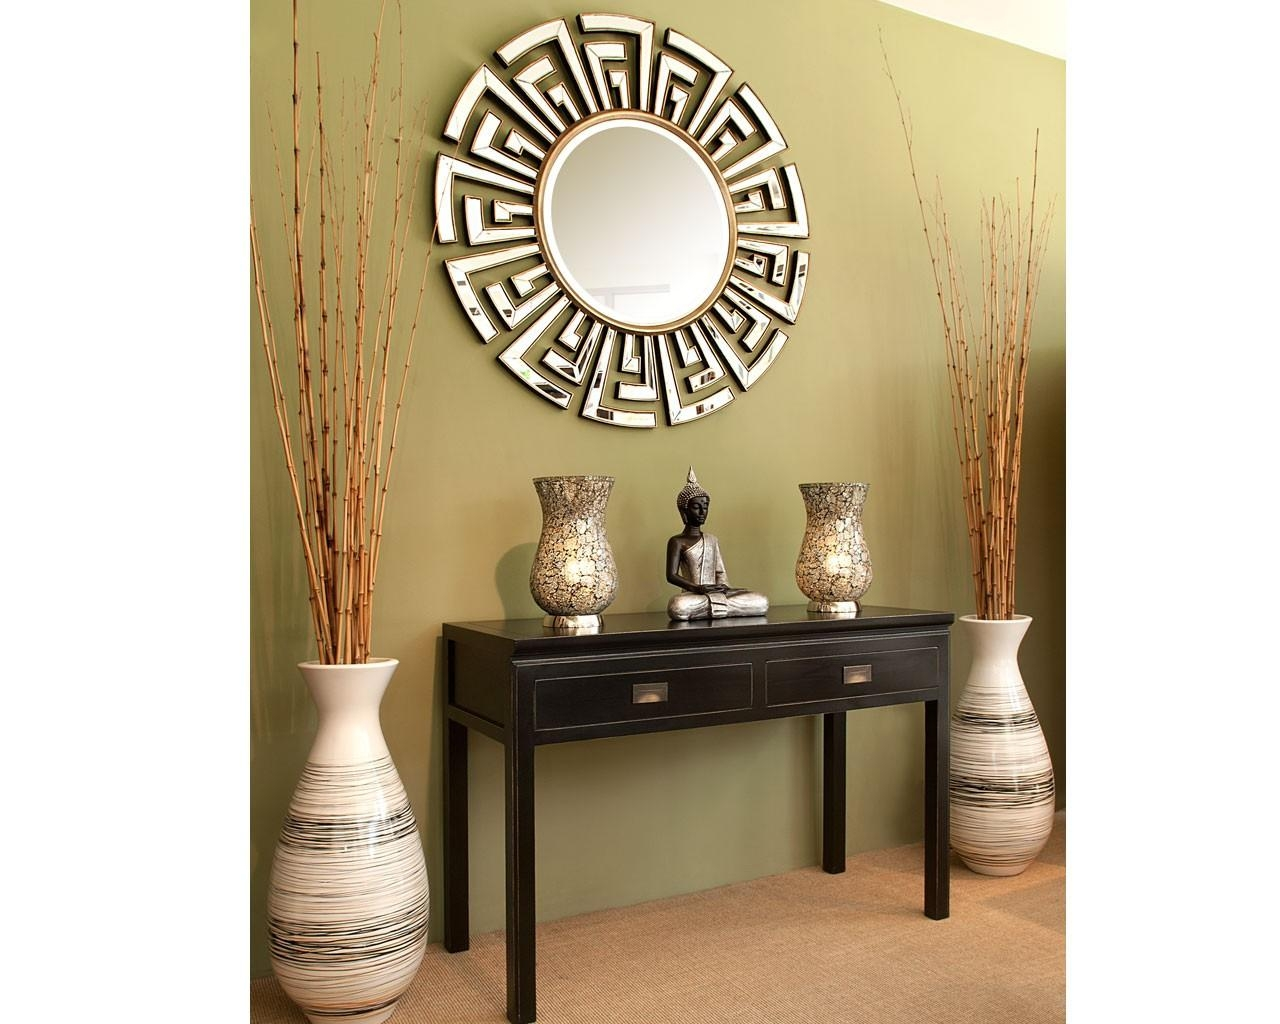 Contemporary Art Deco Round Mirror | Statement Circular Mirrors With Regard To Wall Art Mirrors Contemporary (View 10 of 20)